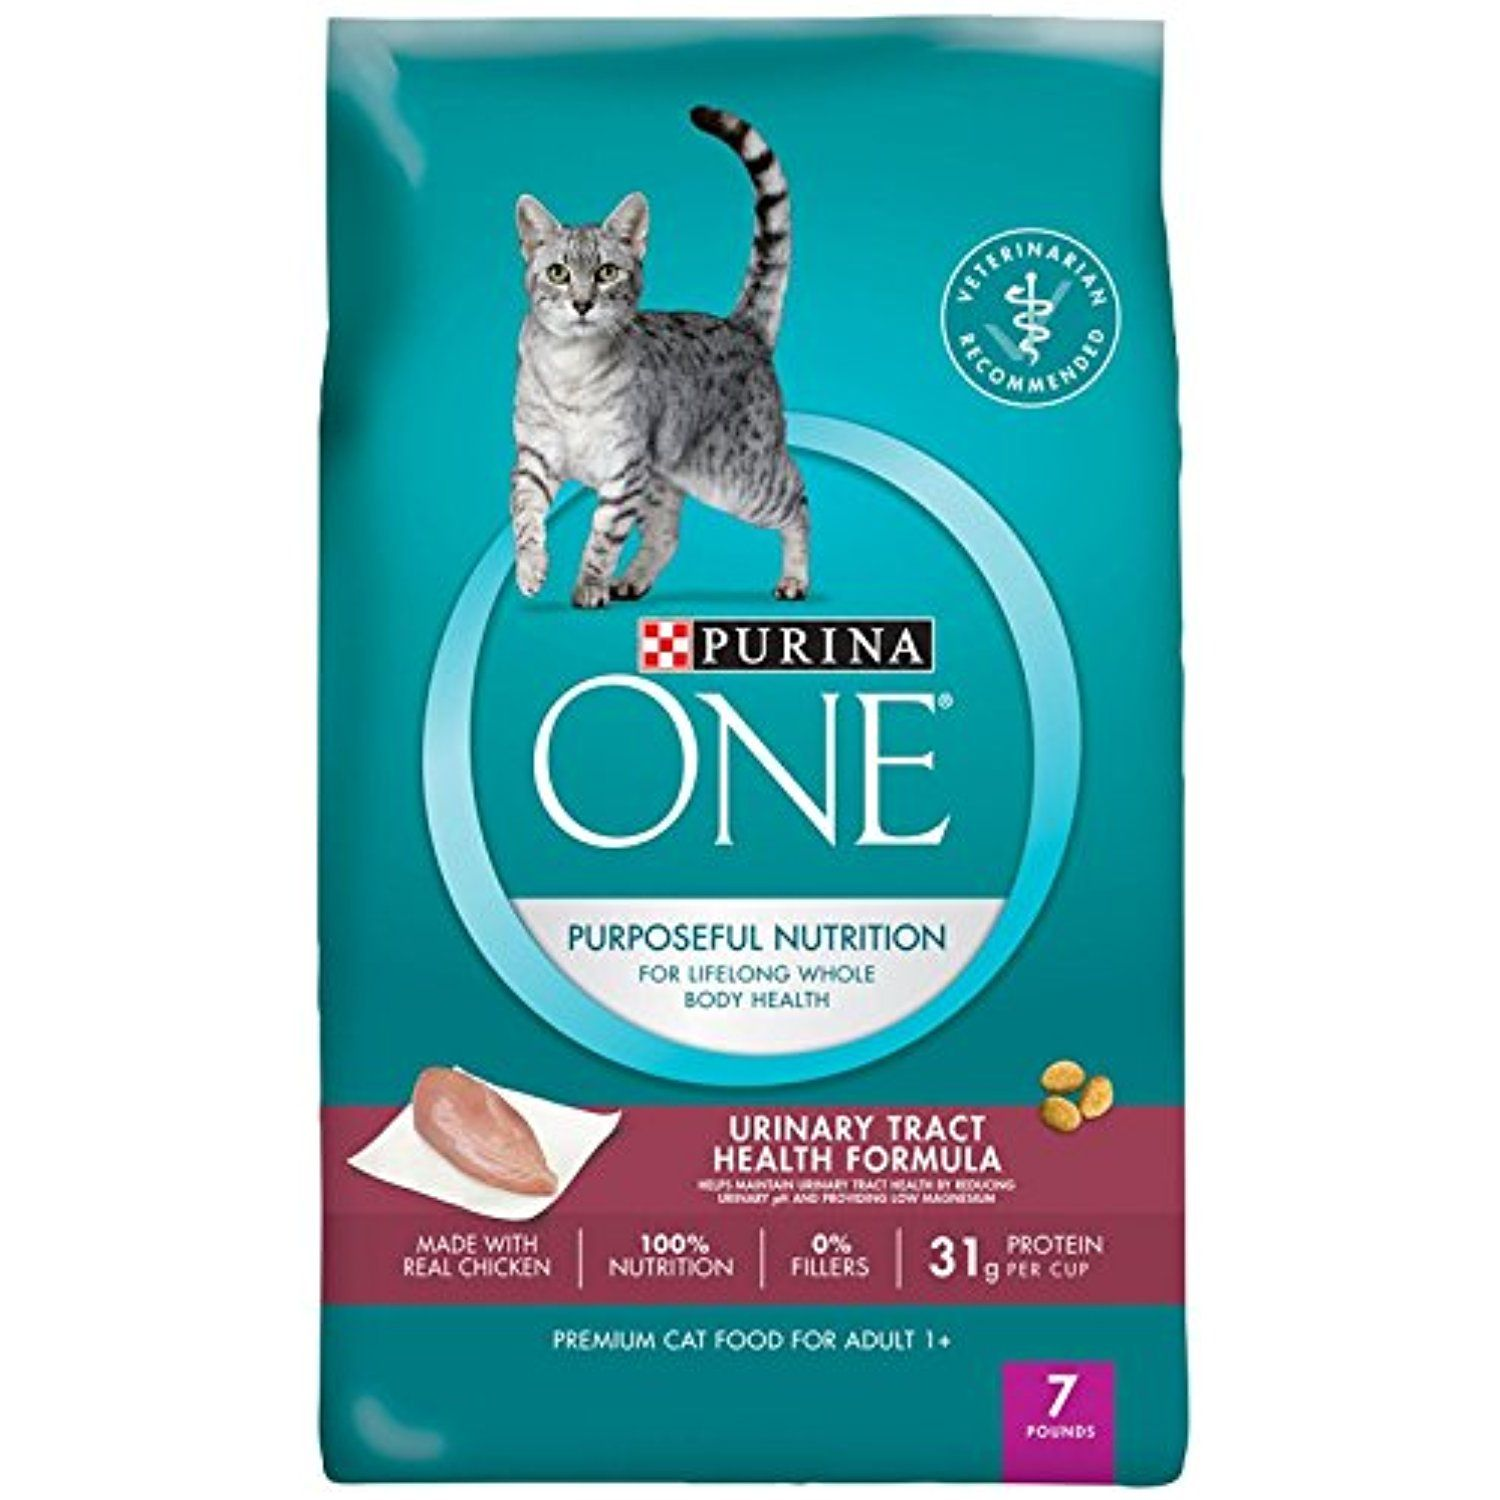 Purina ONE Purposeful Nutrition Dry Cat Food Adult